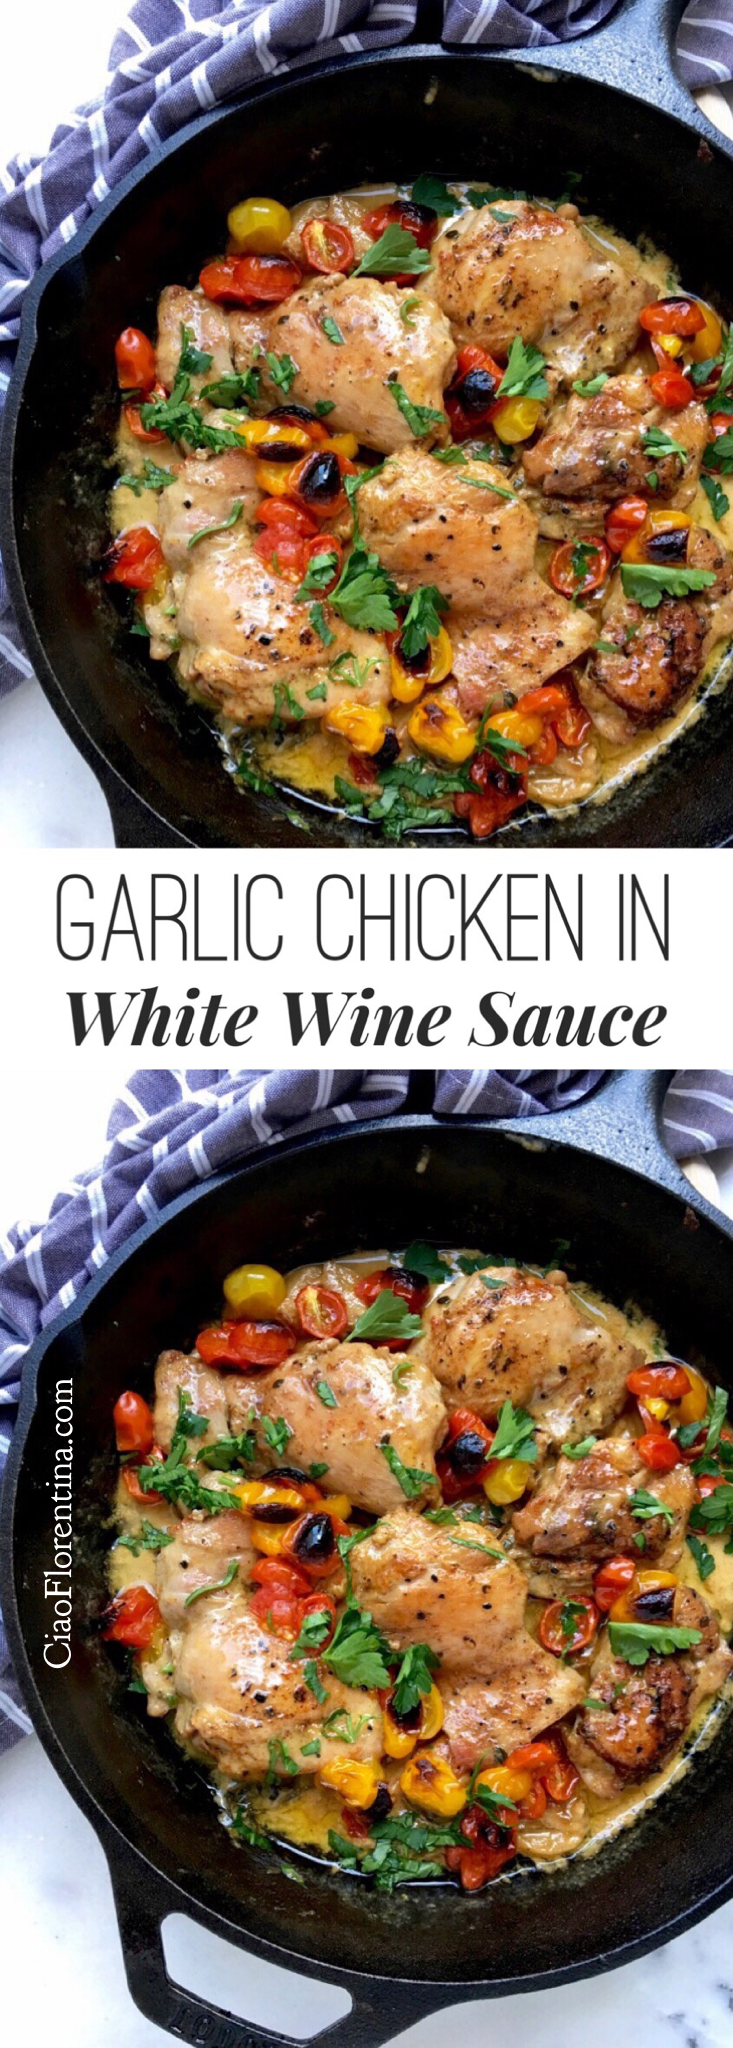 Chicken In White Wine Sauce #favoriterecipes